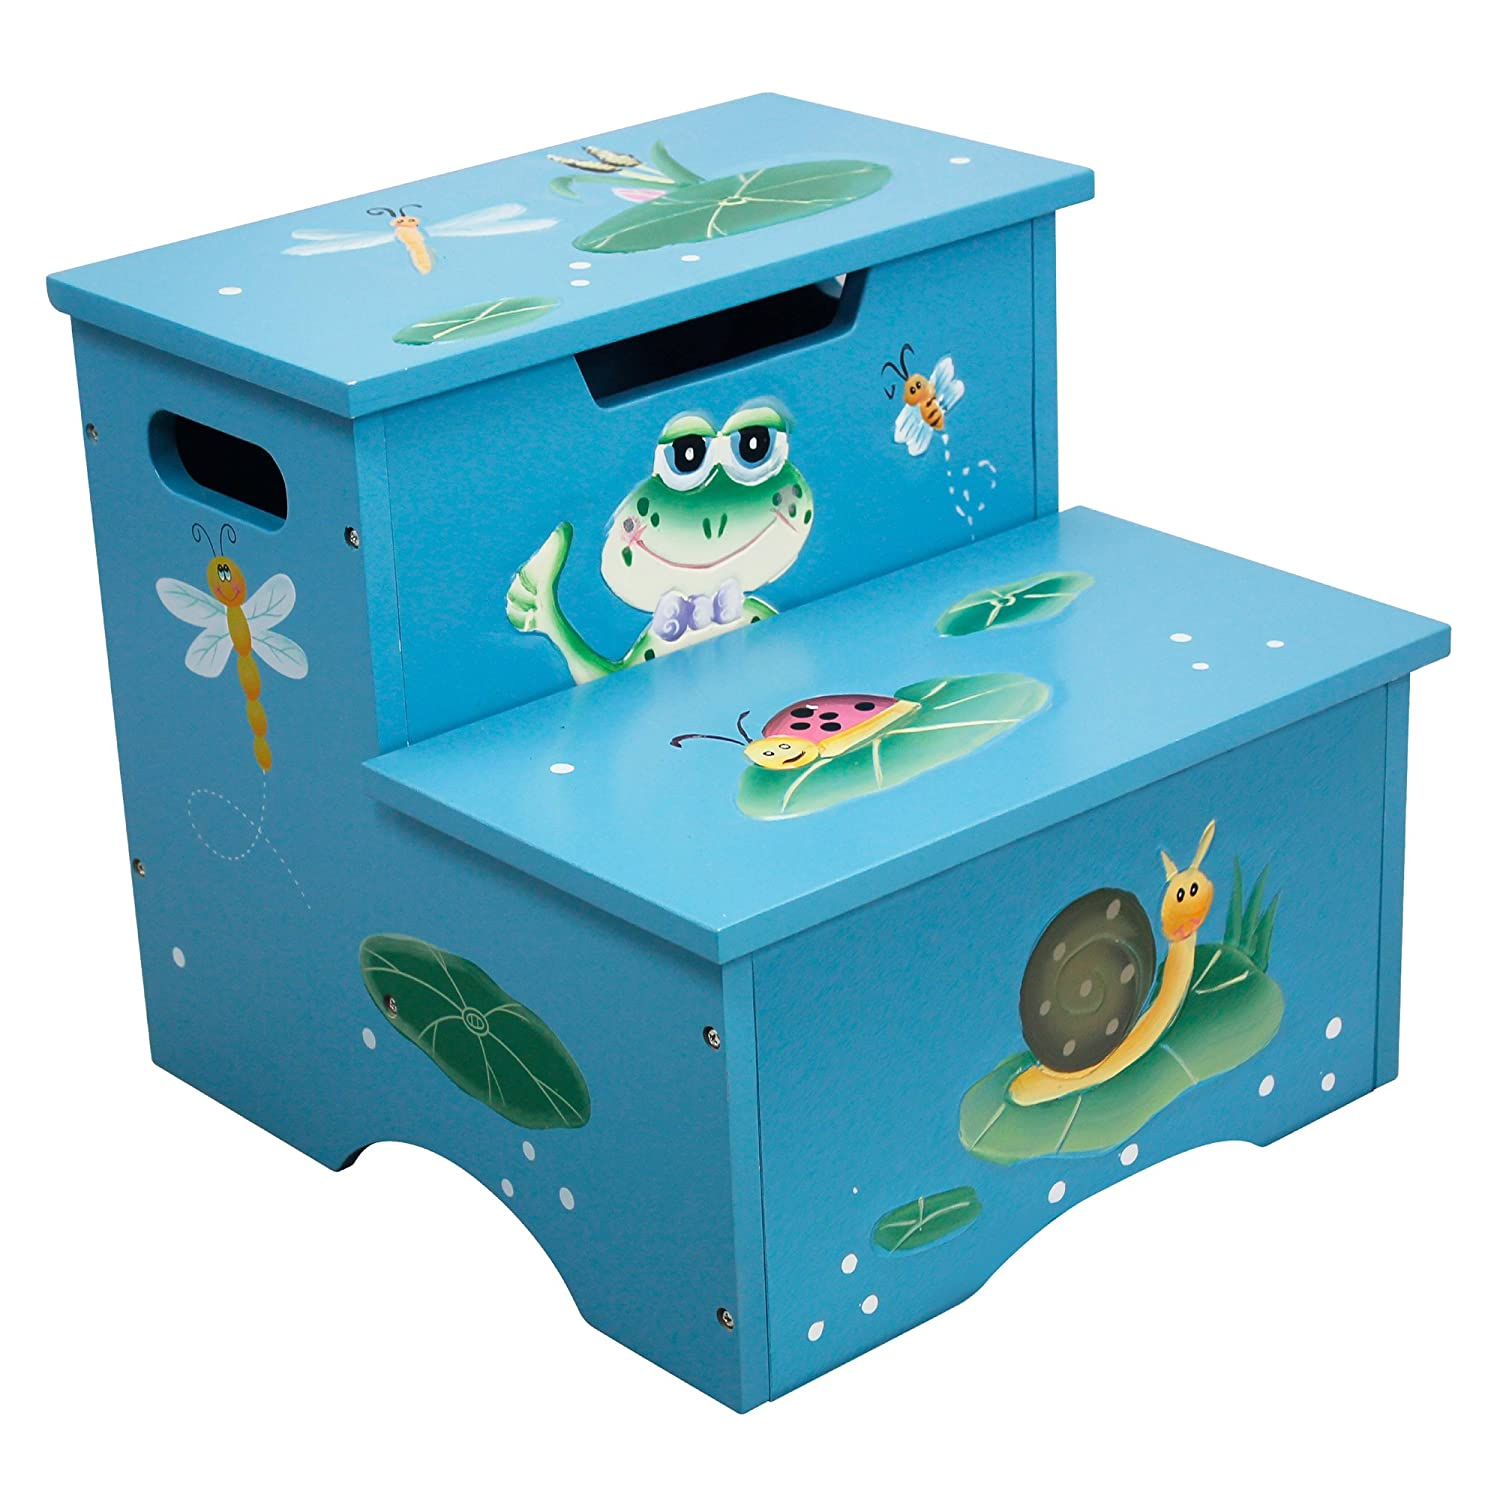 Fantasy Fields - Froggy Thematic Kids Wooden Step Stool with Storage | Imagination Inspiring Hand Crafted & Hand Painted Details Non-Toxic, Lead Free Water-based Paint Teamson W-5423F